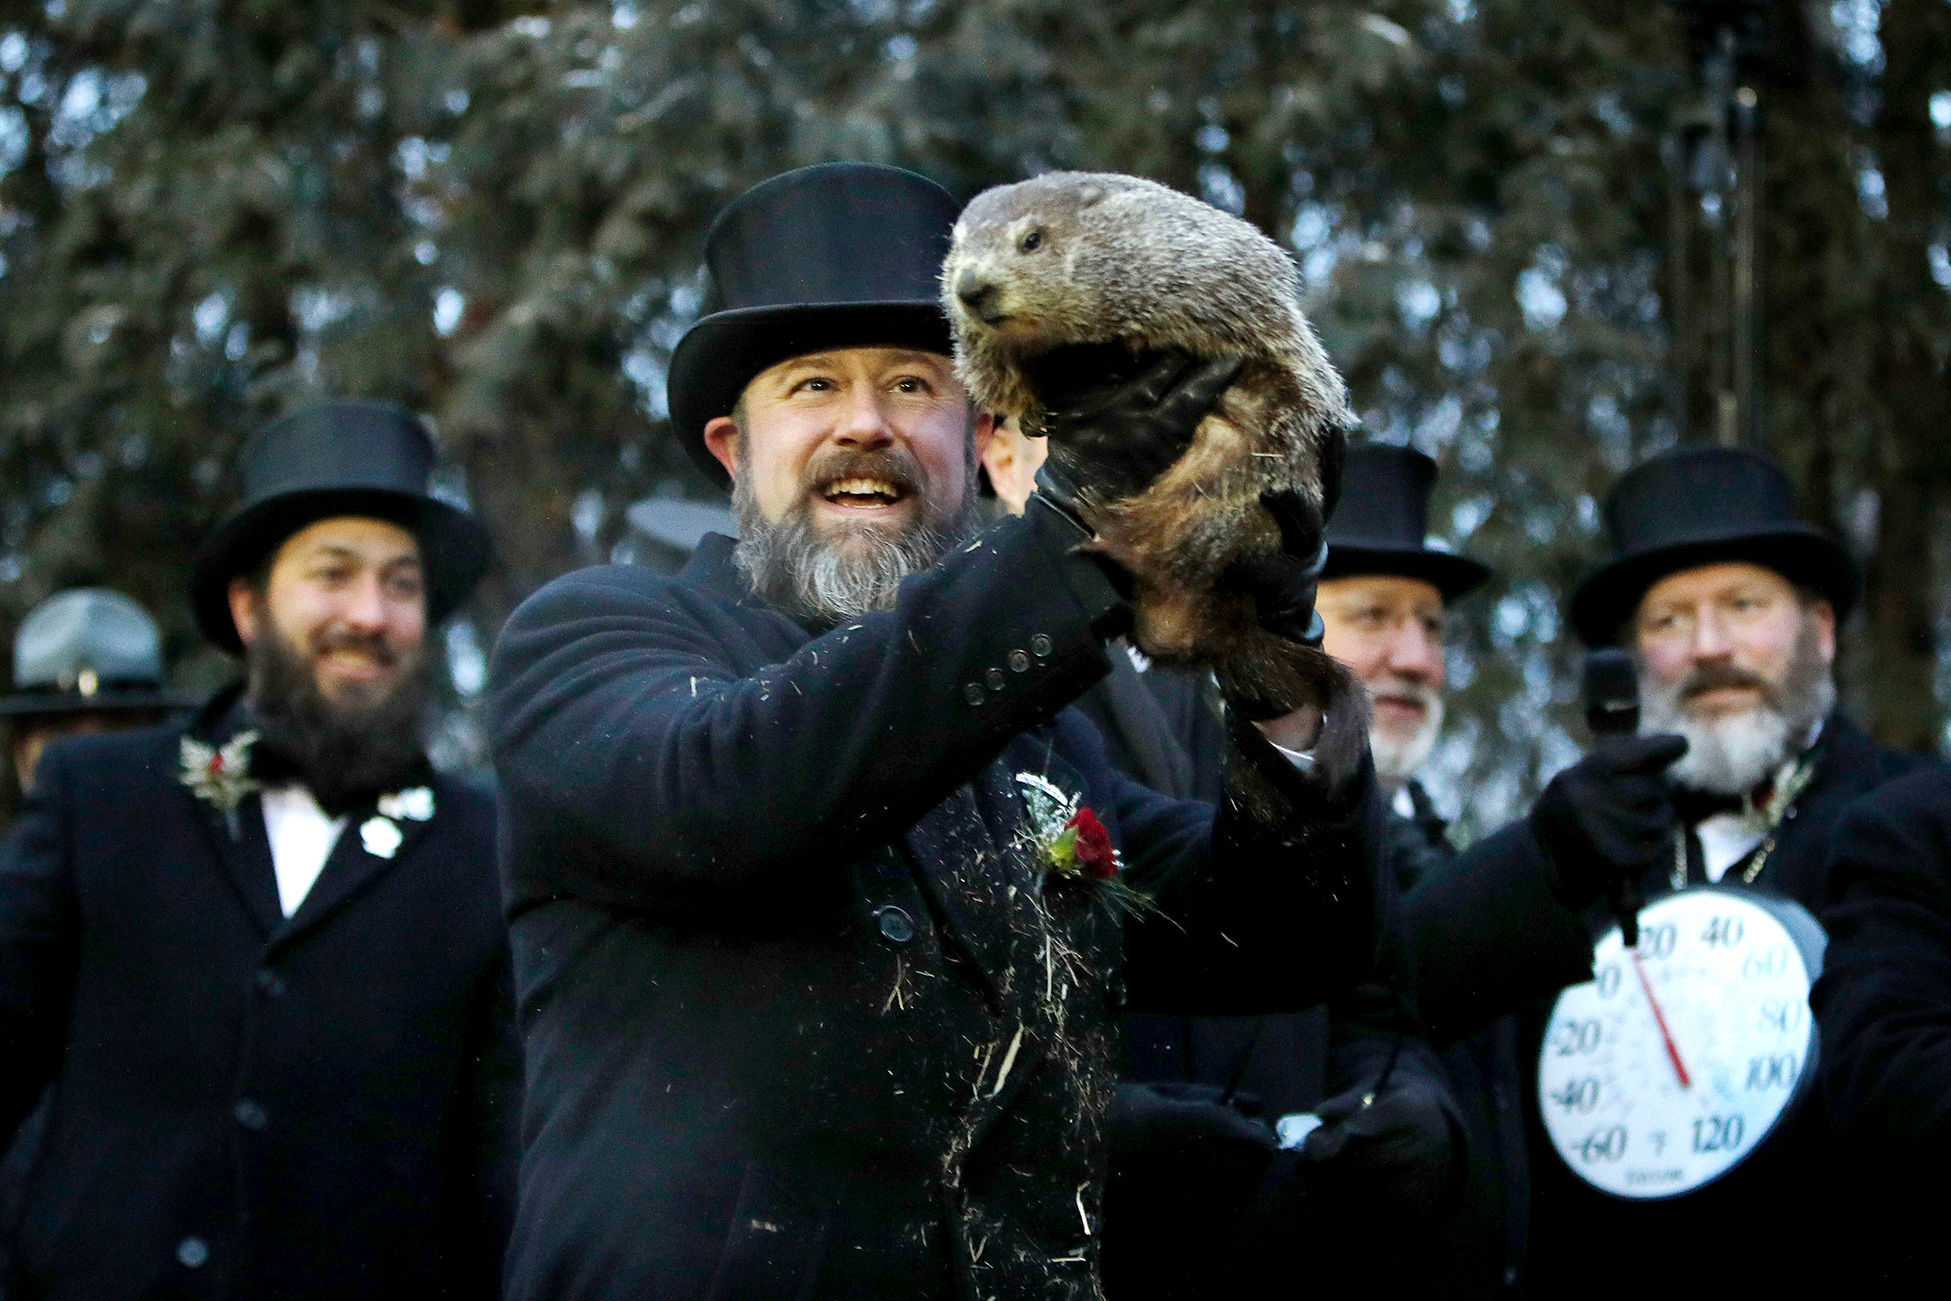 Bye Bye Winter? Punxsutawney Phil Predicts an Early Spring on Groundhog Day